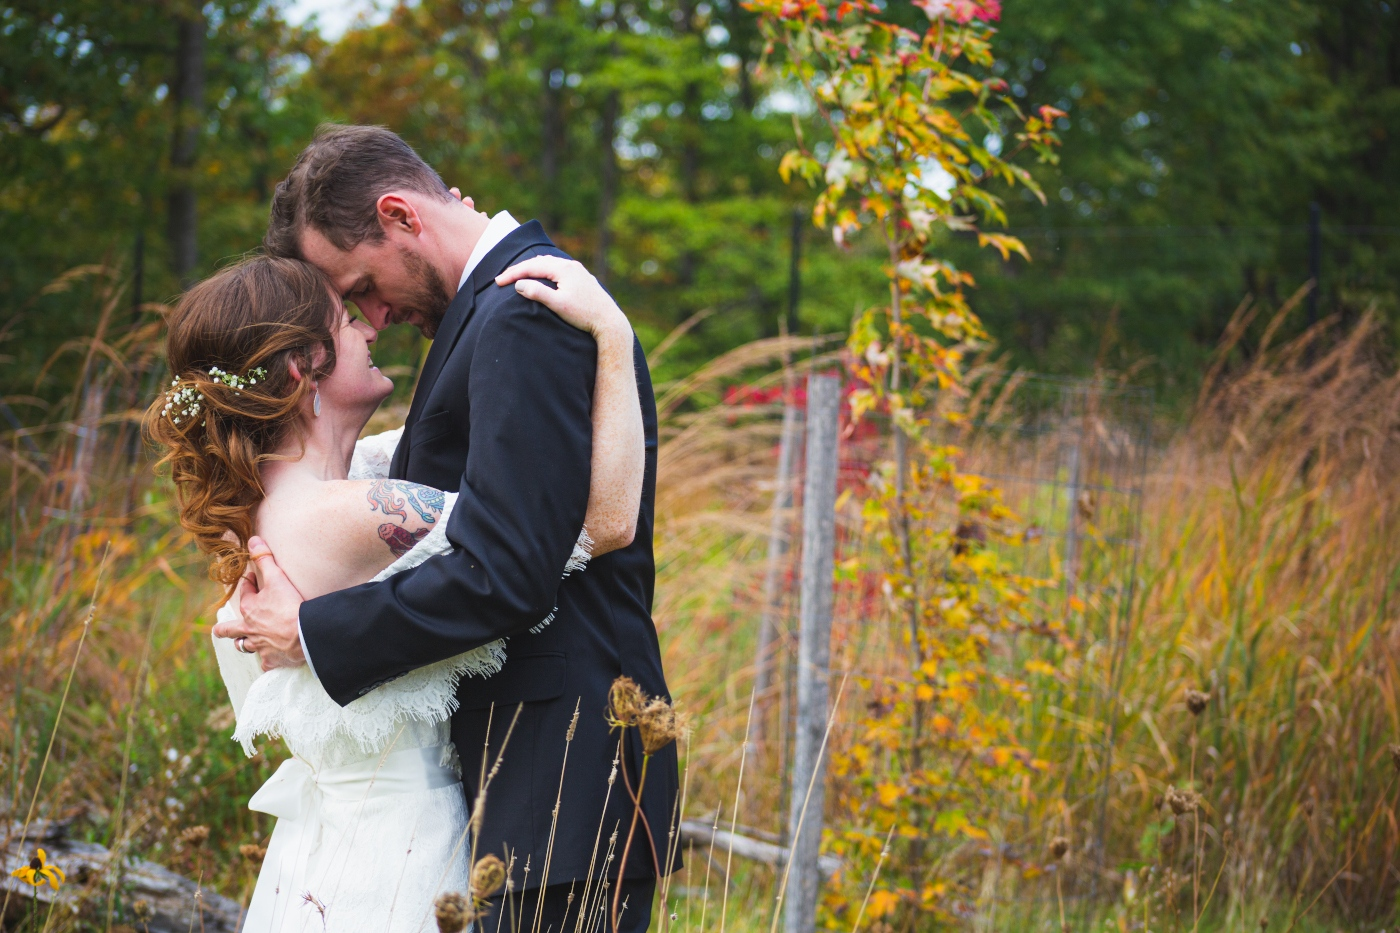 Kelly + Chris at Acacia Reservation in Lyndhurst, Ohio